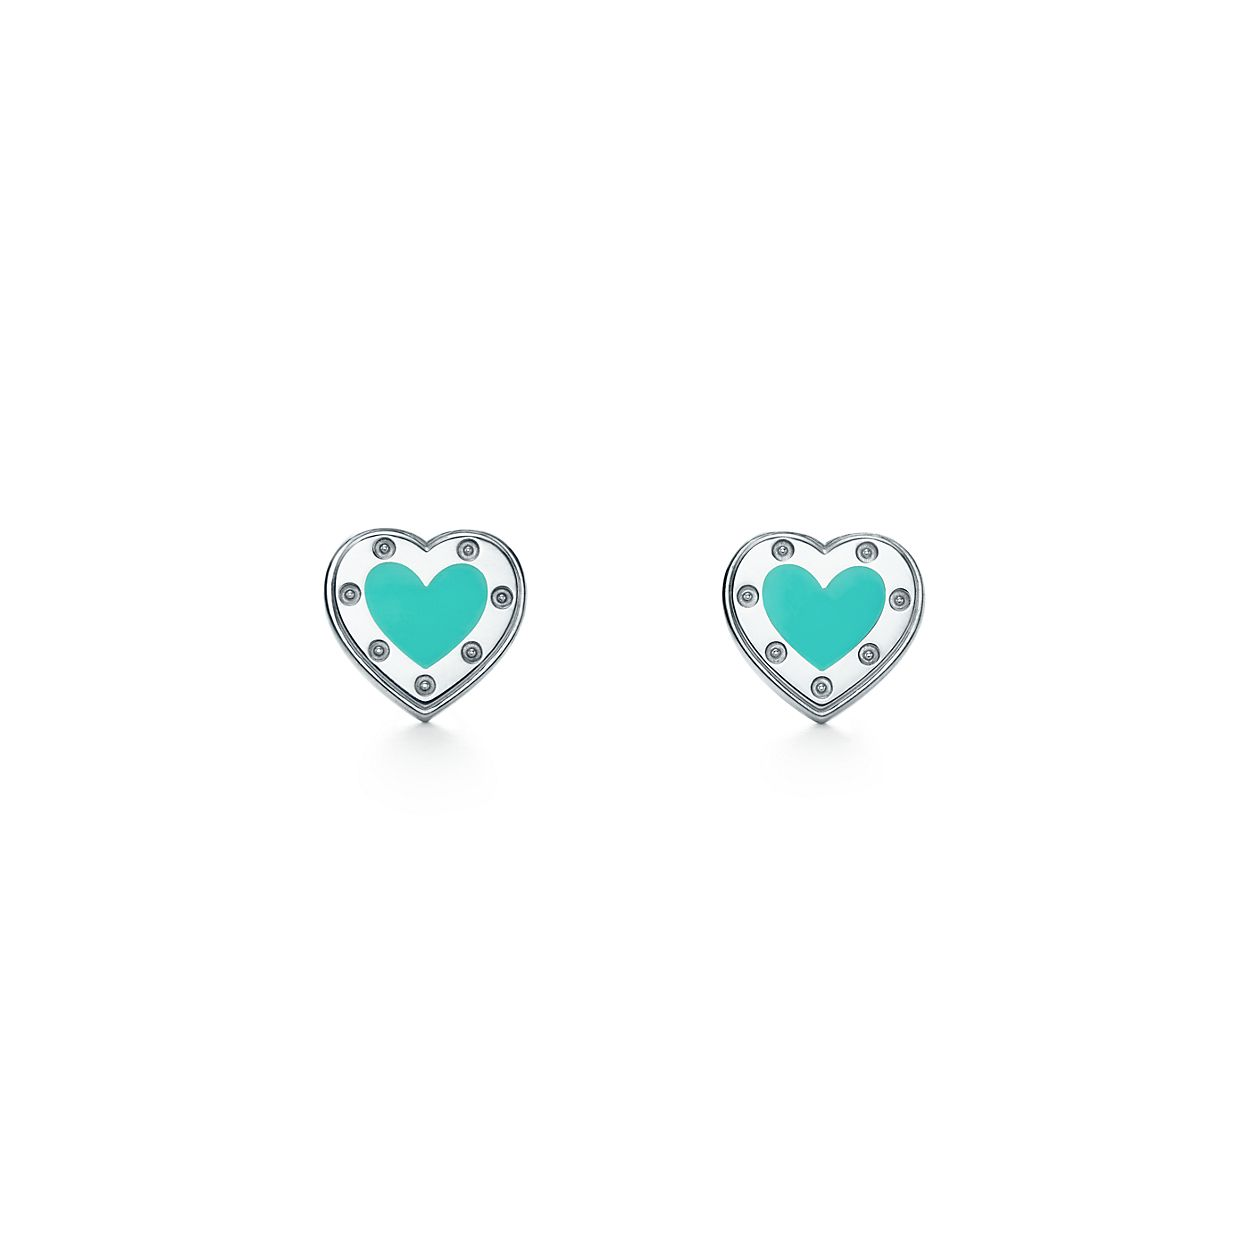 Return To Tiffany Love Heart Earrings